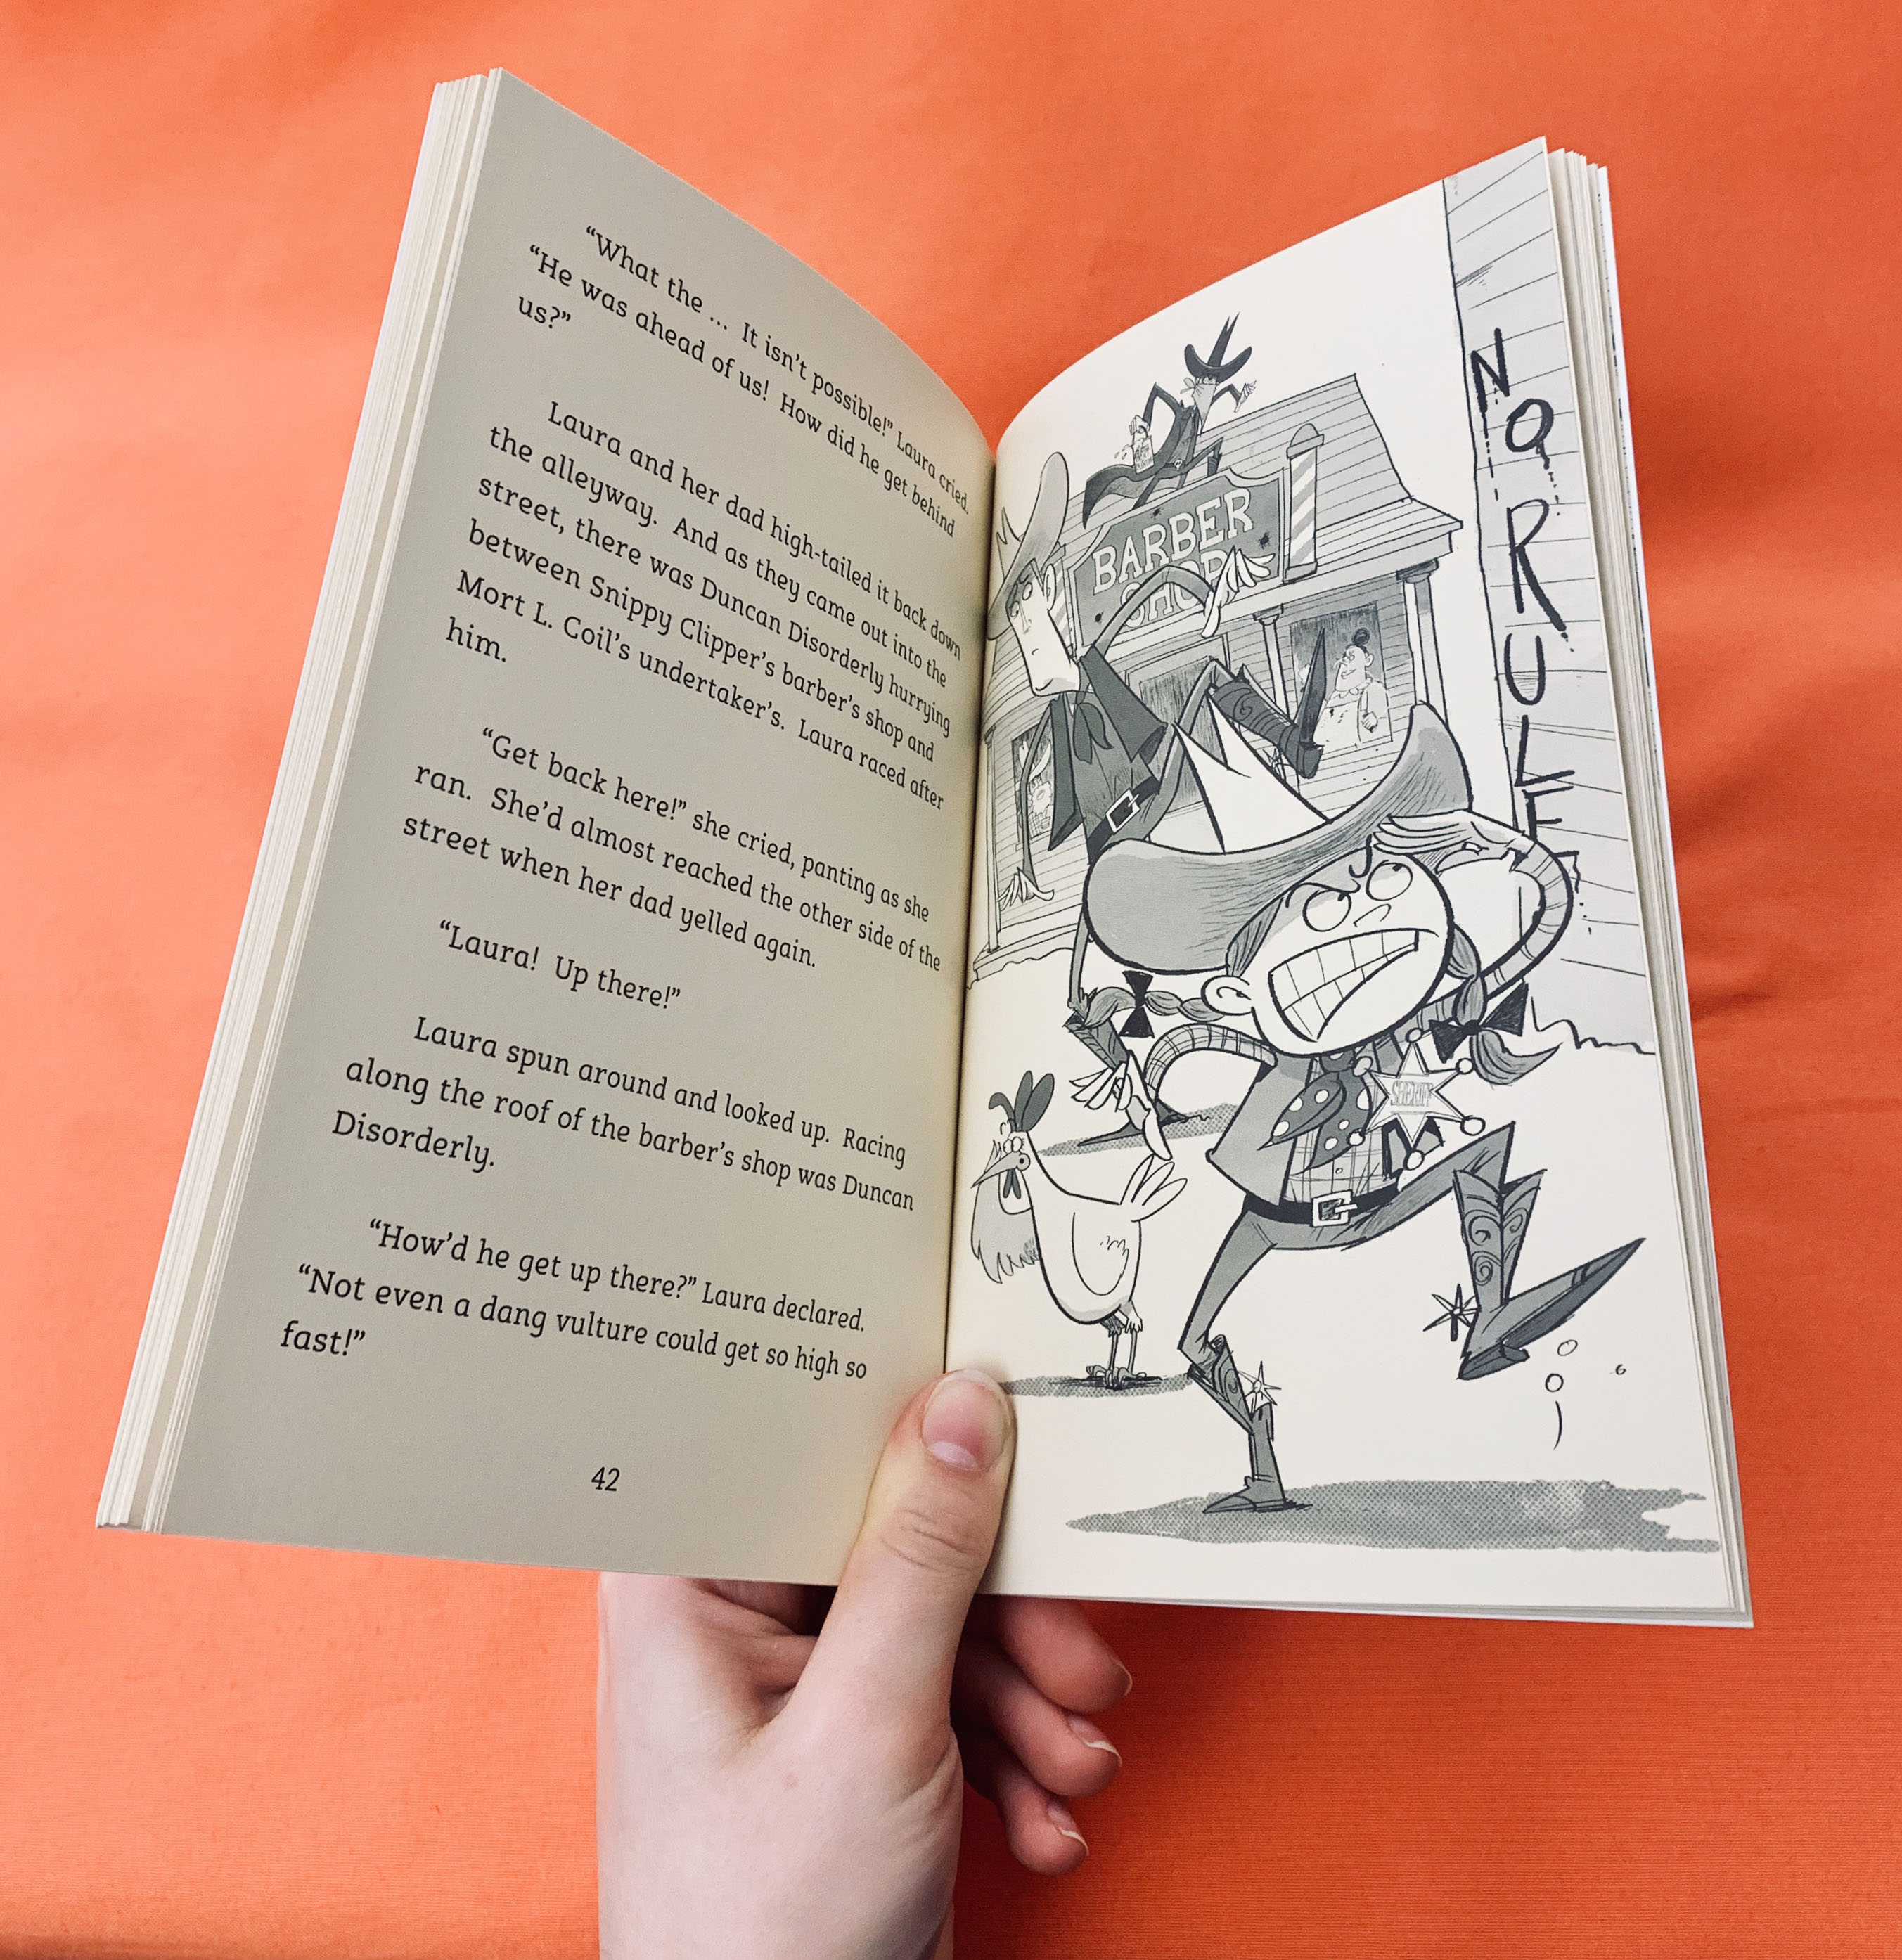 Image of the book Laura Norder open at a page with illustration of Laura